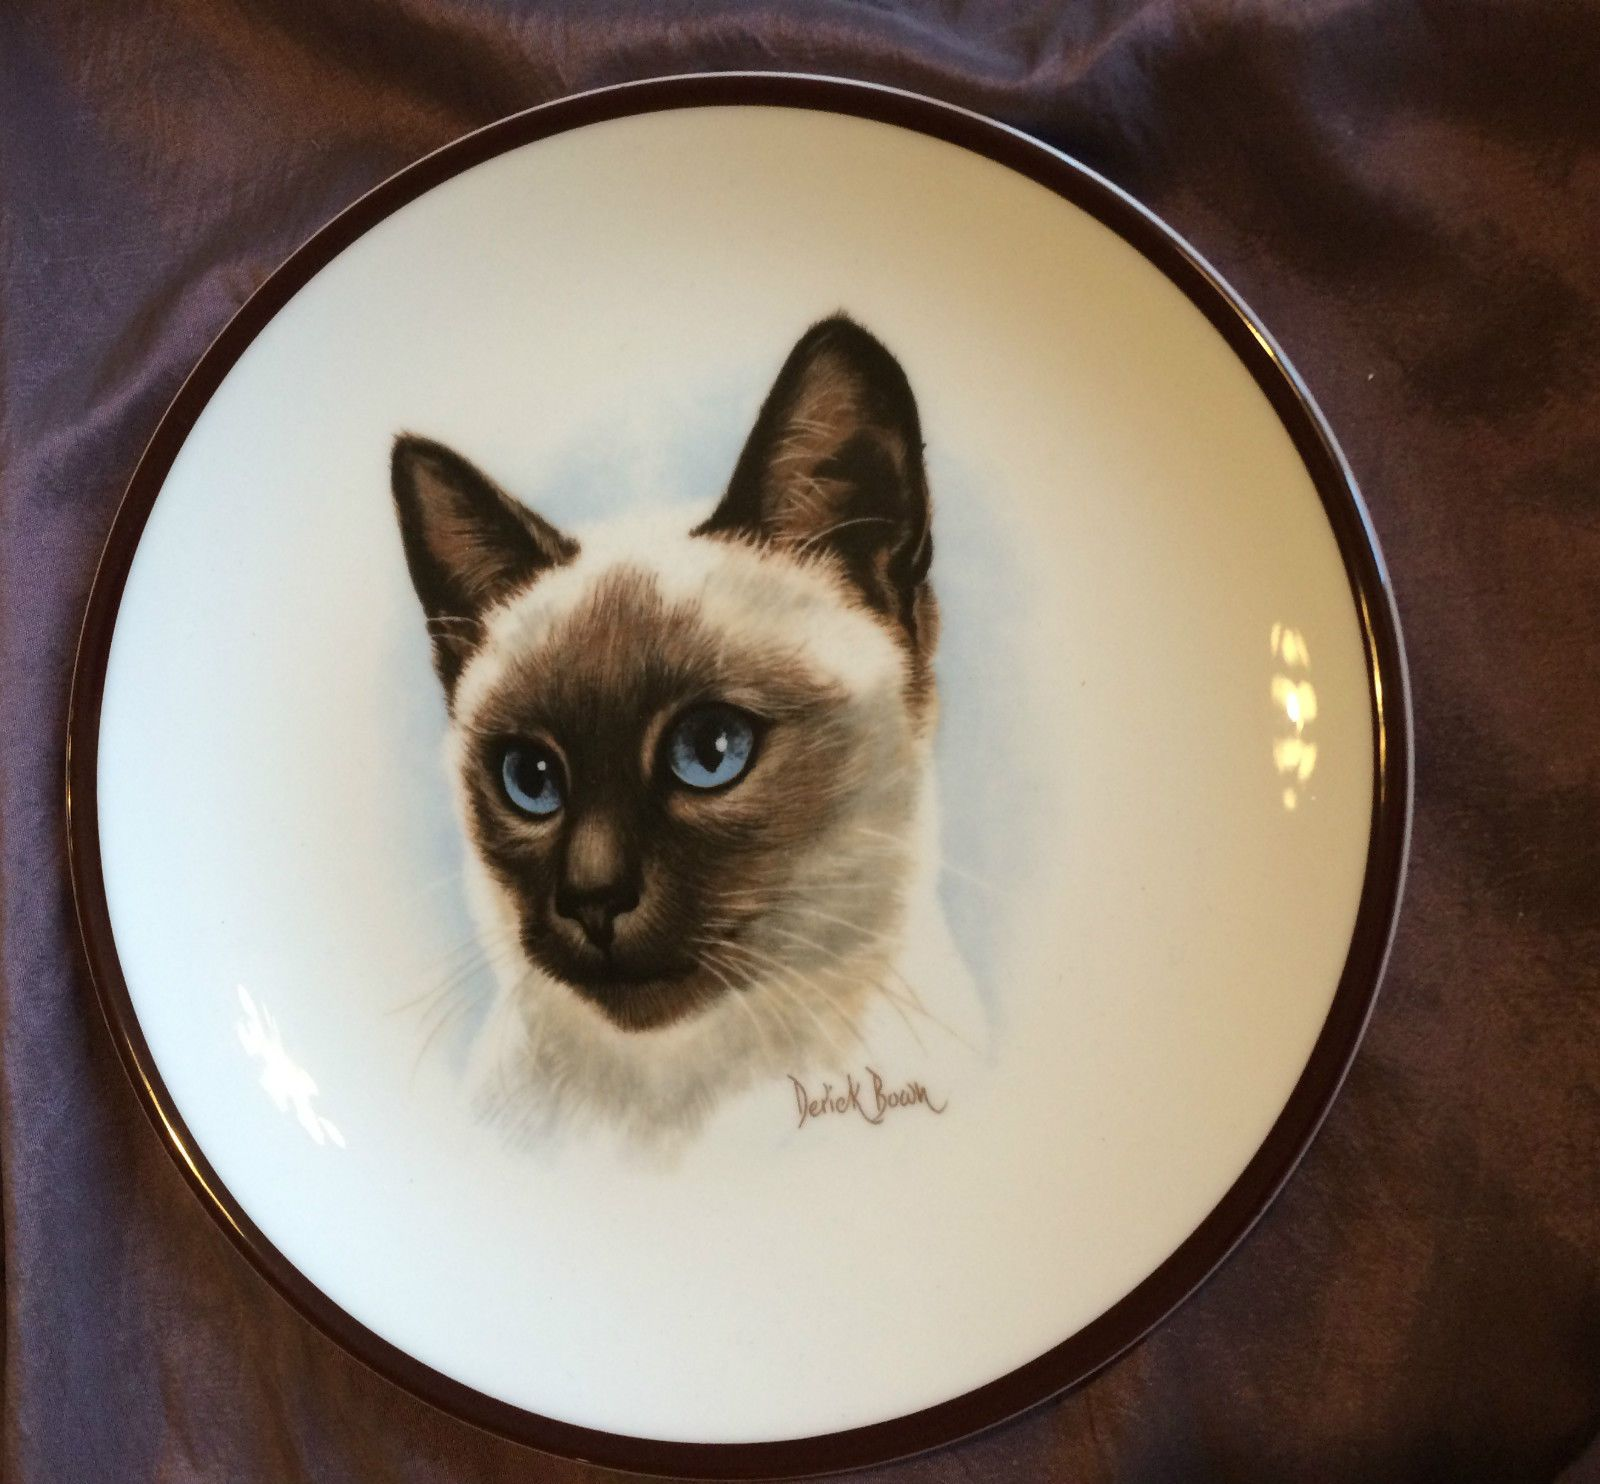 Coalport China SIAMESE CAT Plate, Derick Bown, England Collectors ...